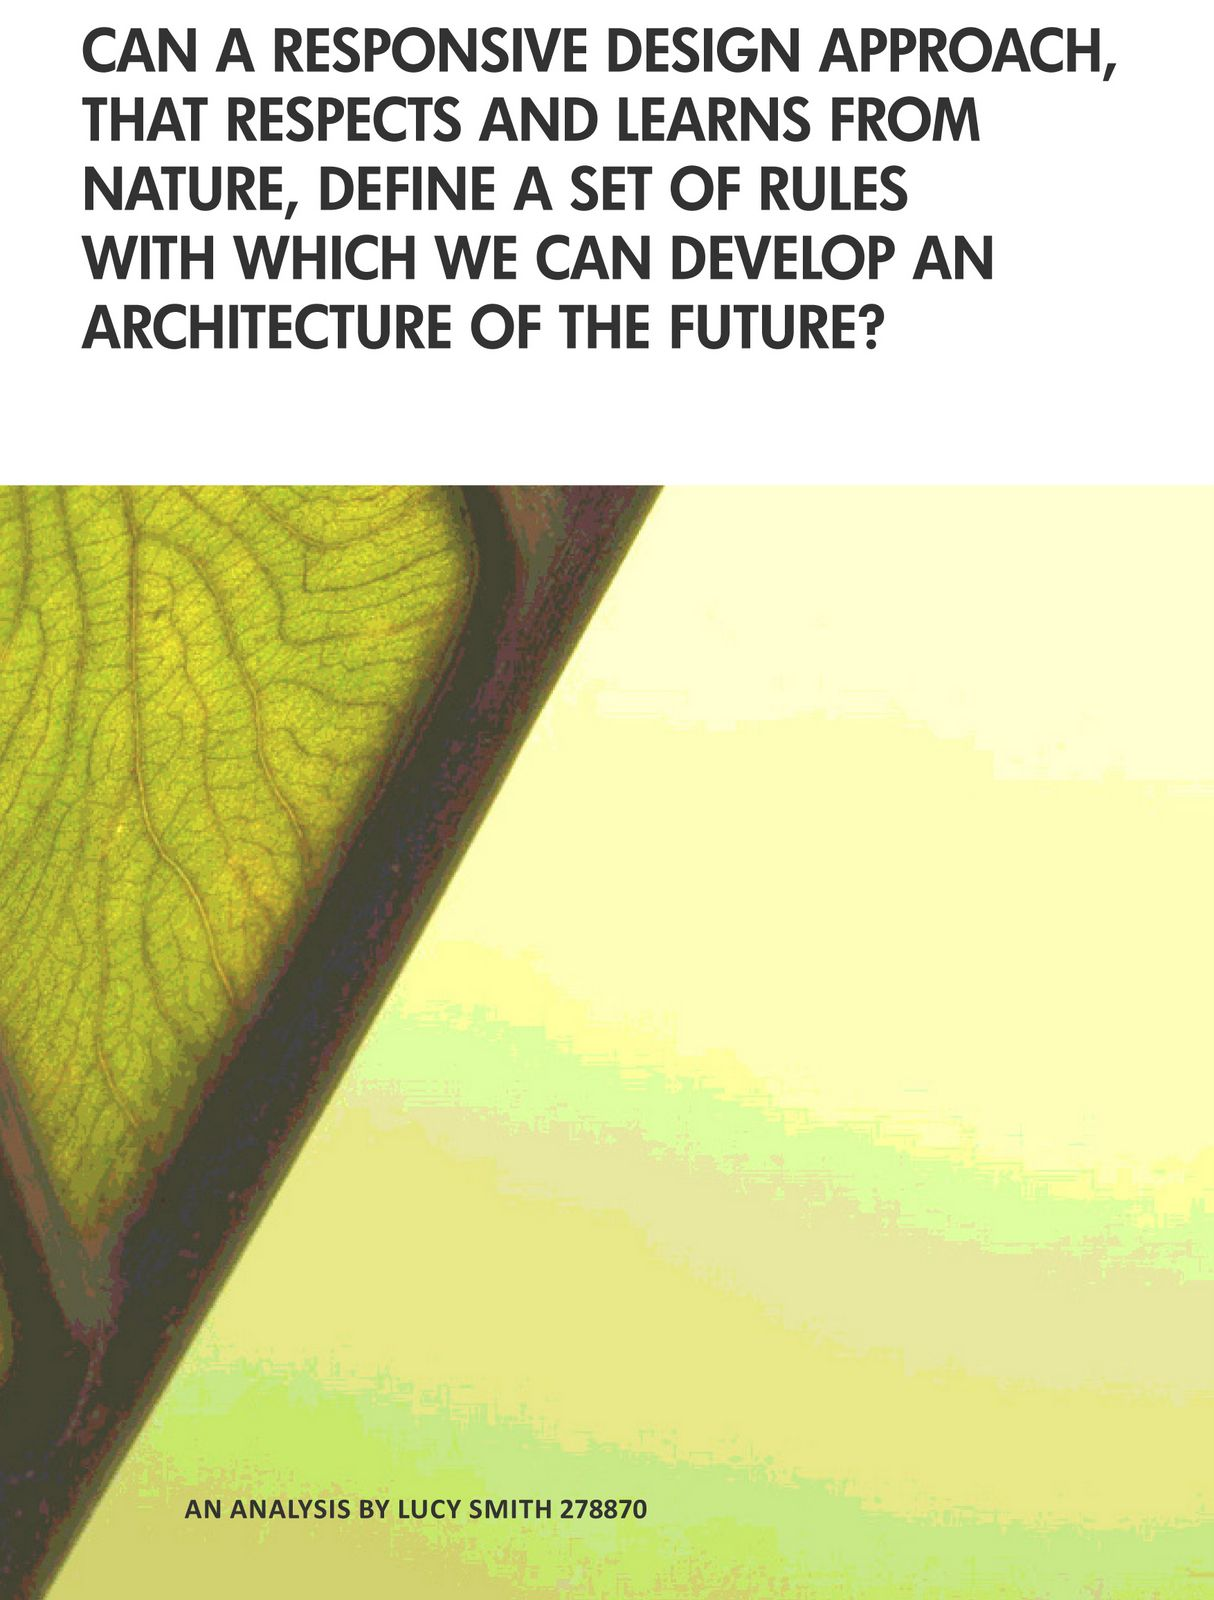 thesis on biomimicry Biomimicry: using nature as a model for design - scholarworks this thesis is brought to you for free and open access by the dissertations and theses at scholarworks.